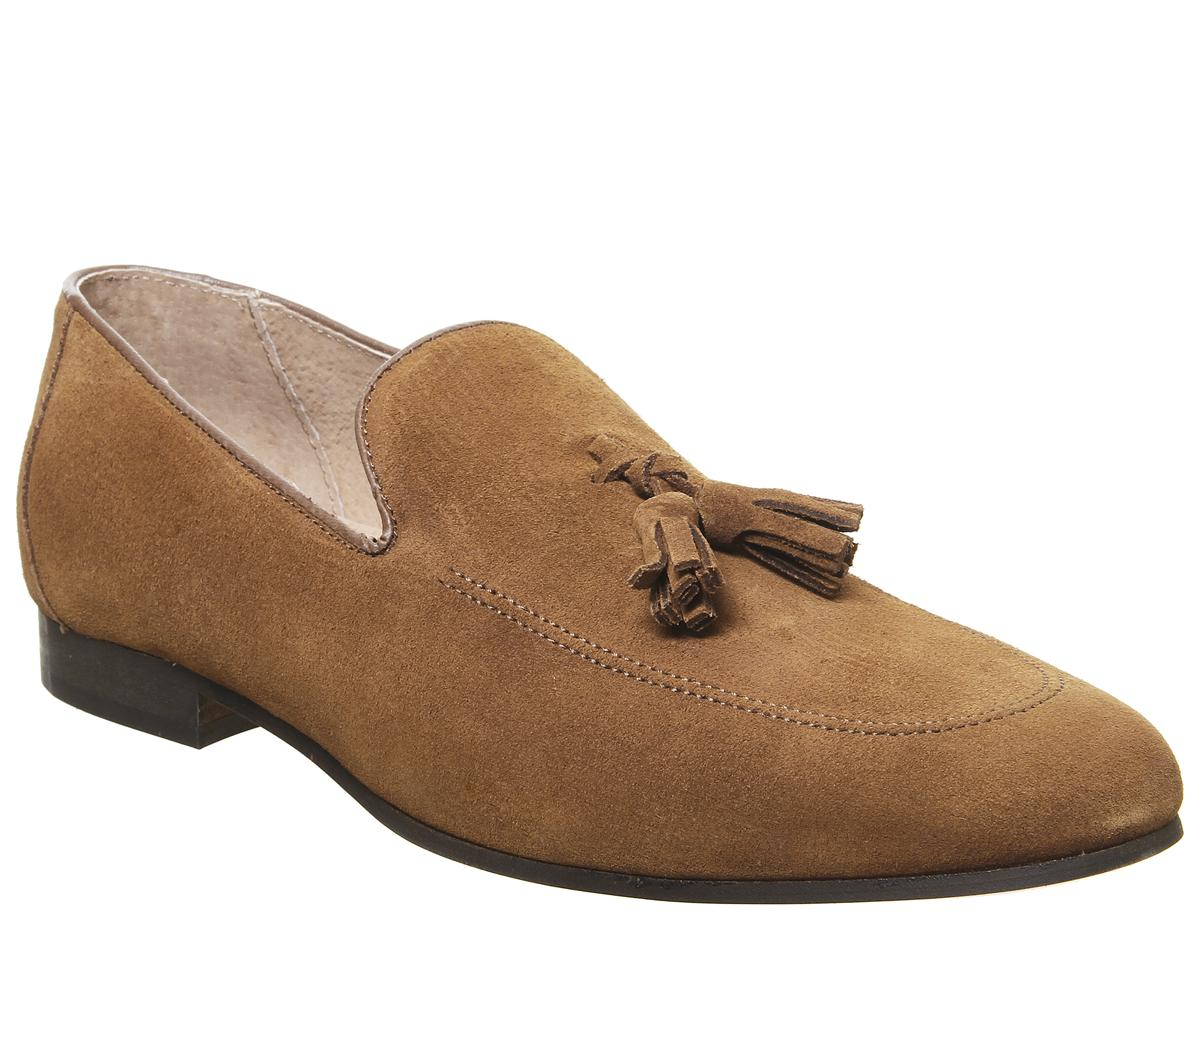 Canter Tassel Loafers